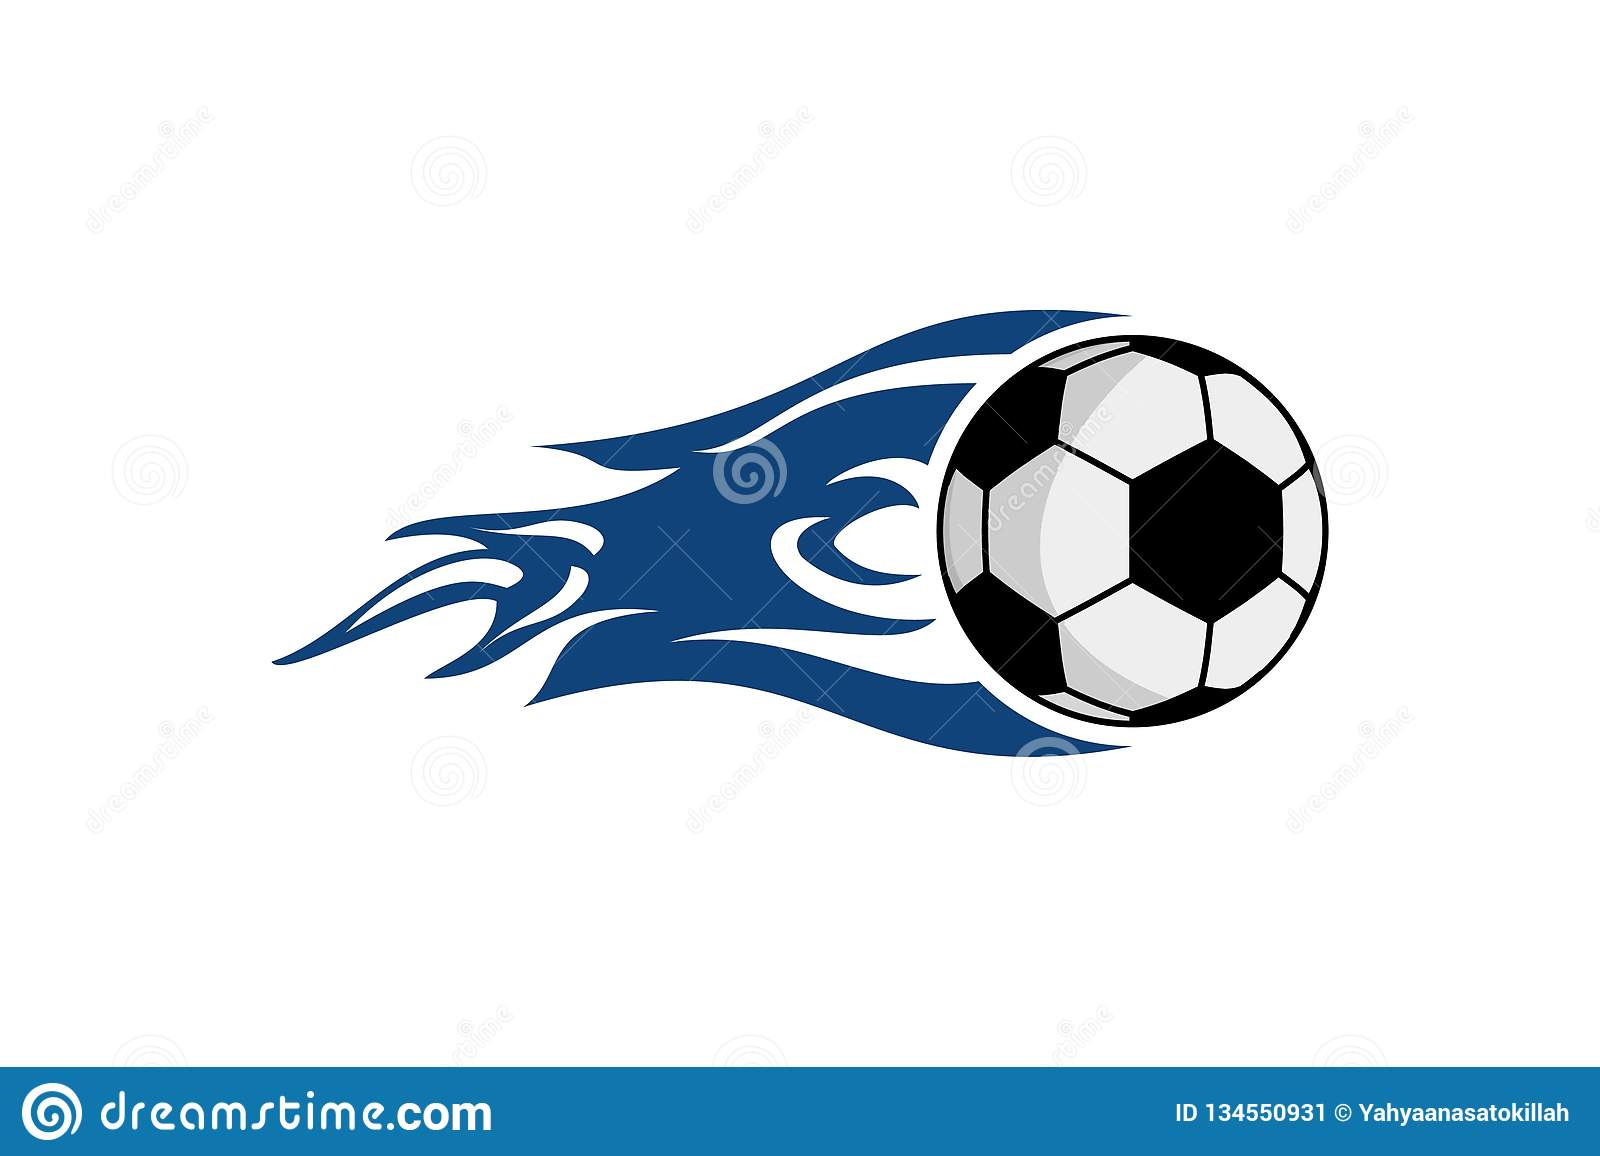 Football Logo Designs Inspiration Isolated On White Background Stock Vector Illustration Of Label Creative 134550931